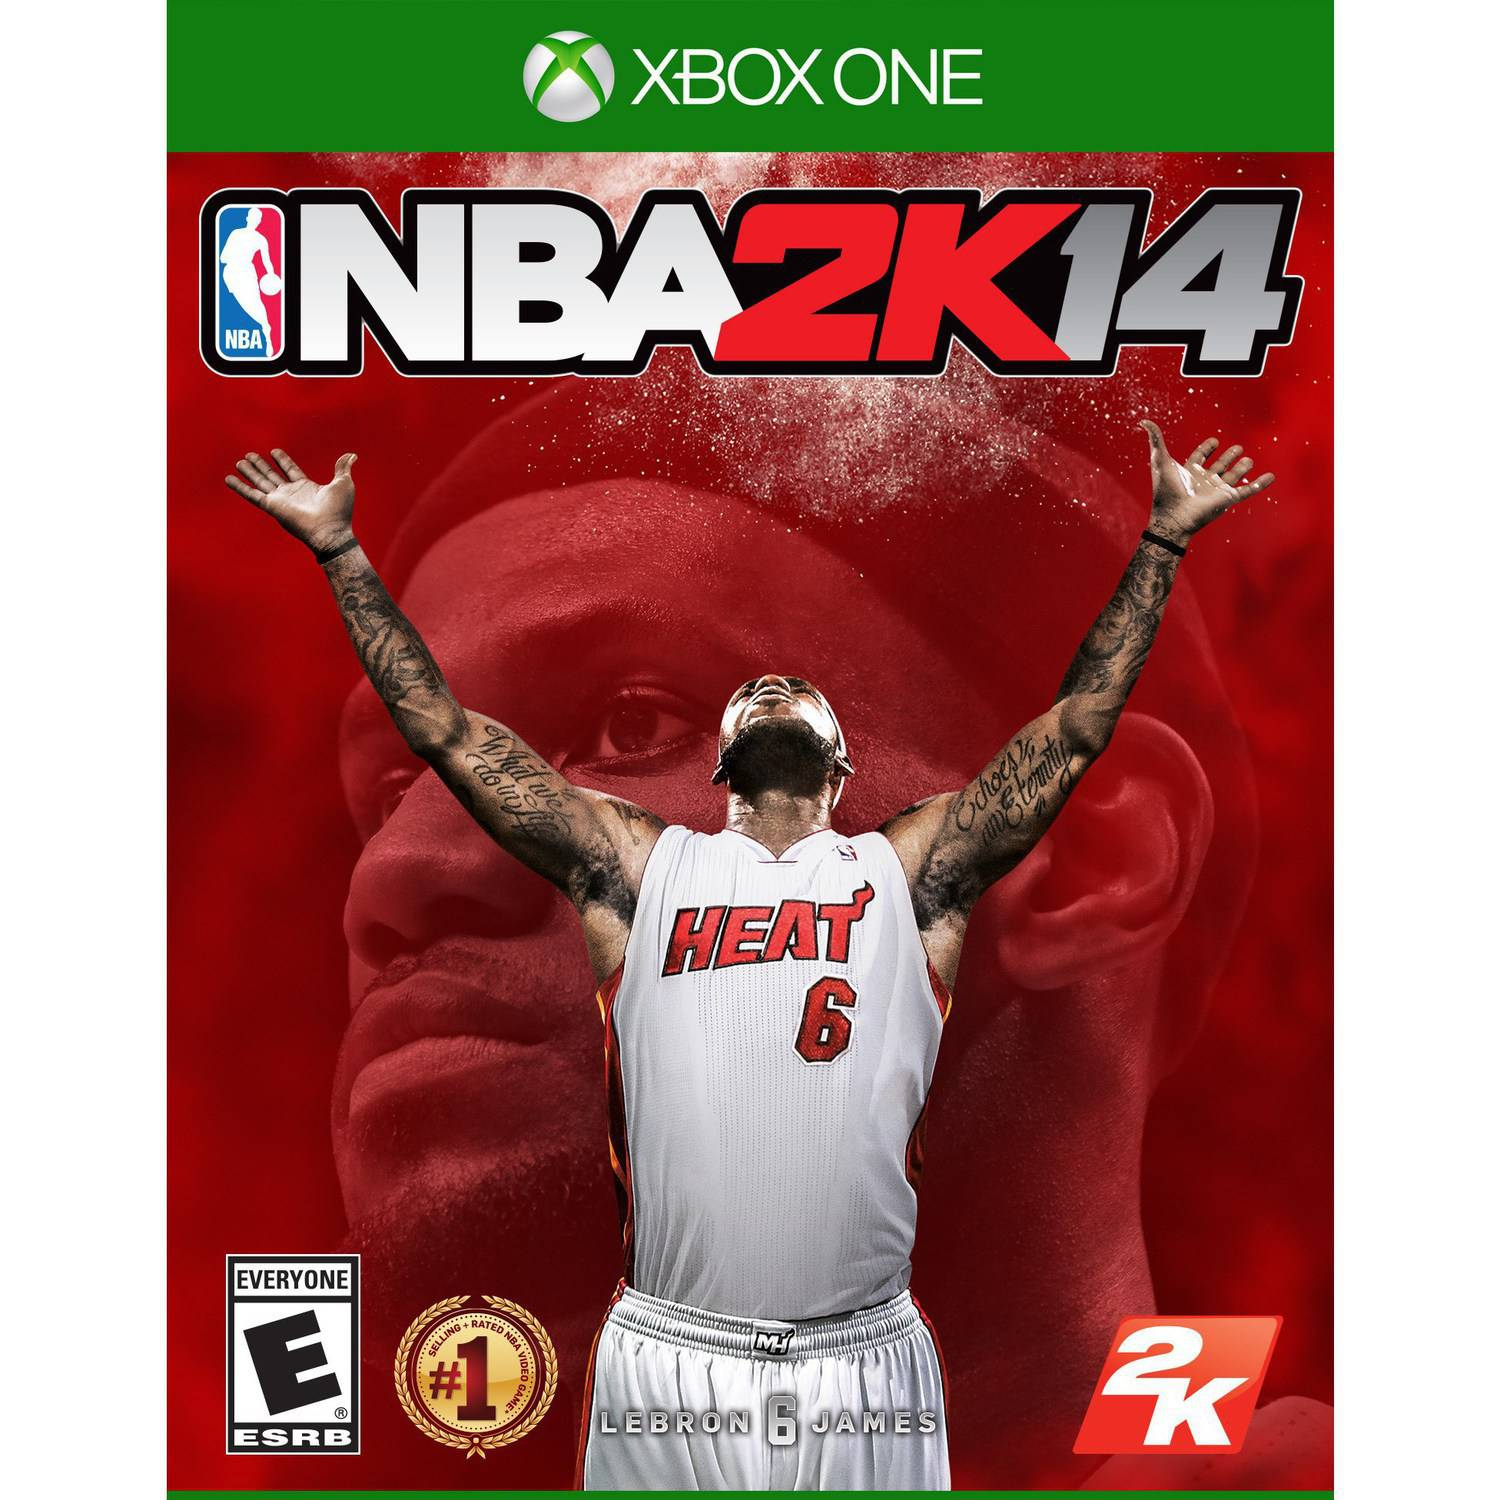 NBA 2K14 (Xbox One) - Pre-Owned